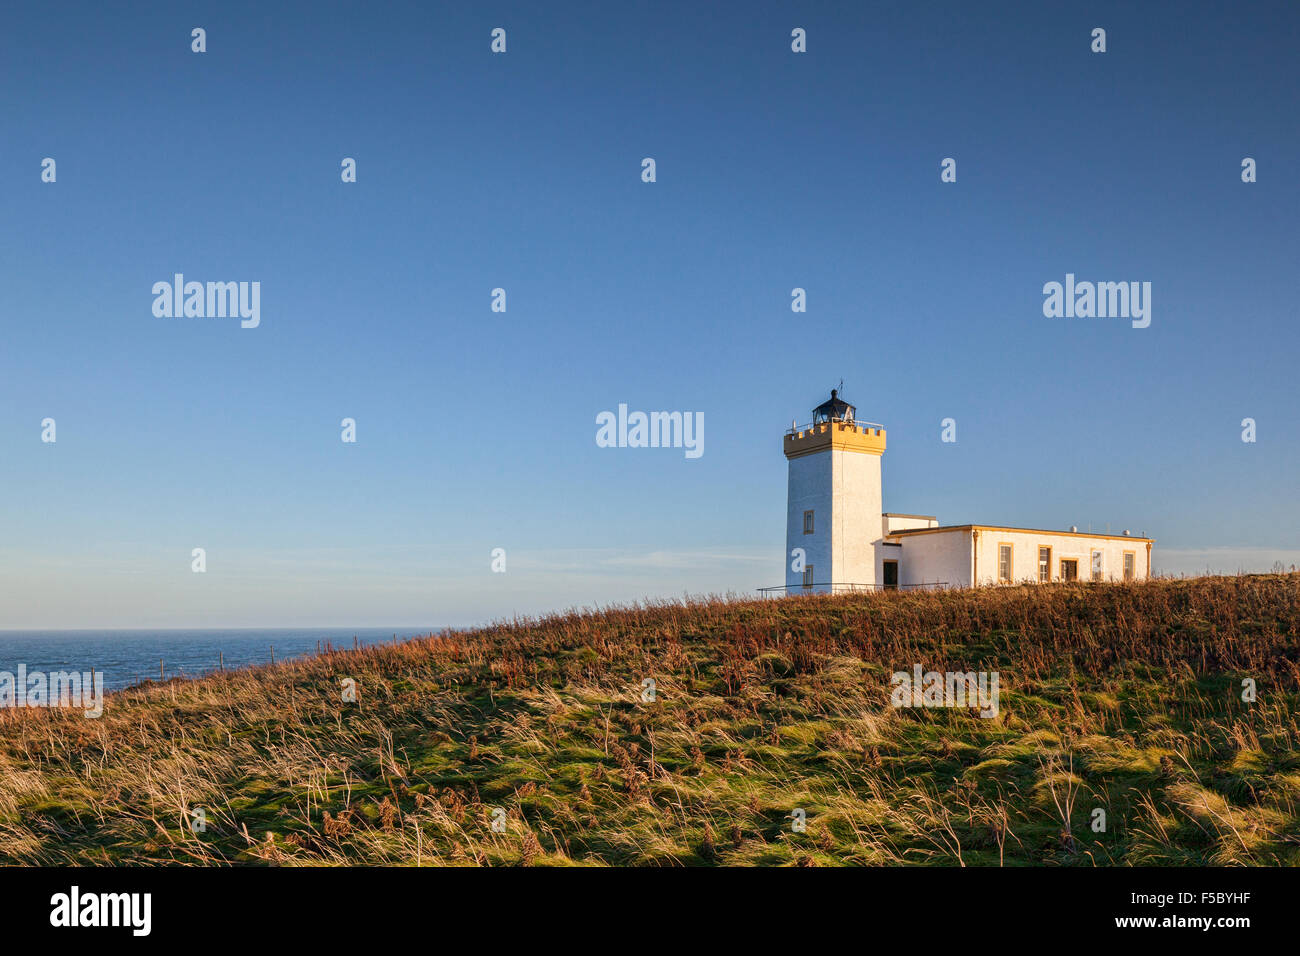 Lighthouse at Duncansby Head, near John o' Groats in Caithness, Scotland, UK. - Stock Image